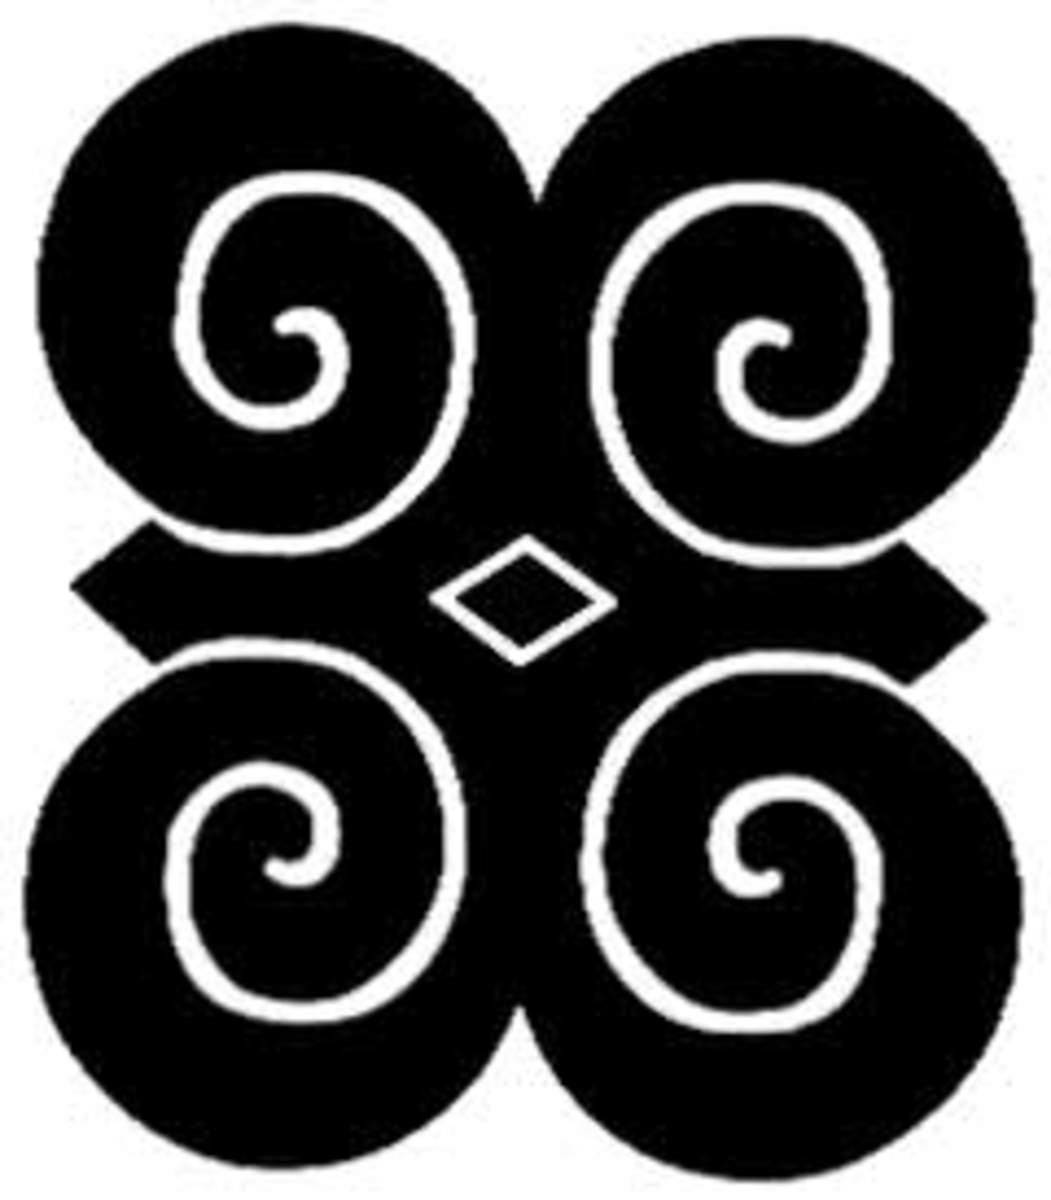 a symbol of strenght(mind, body, and spirit), humility, wisdom, and learning